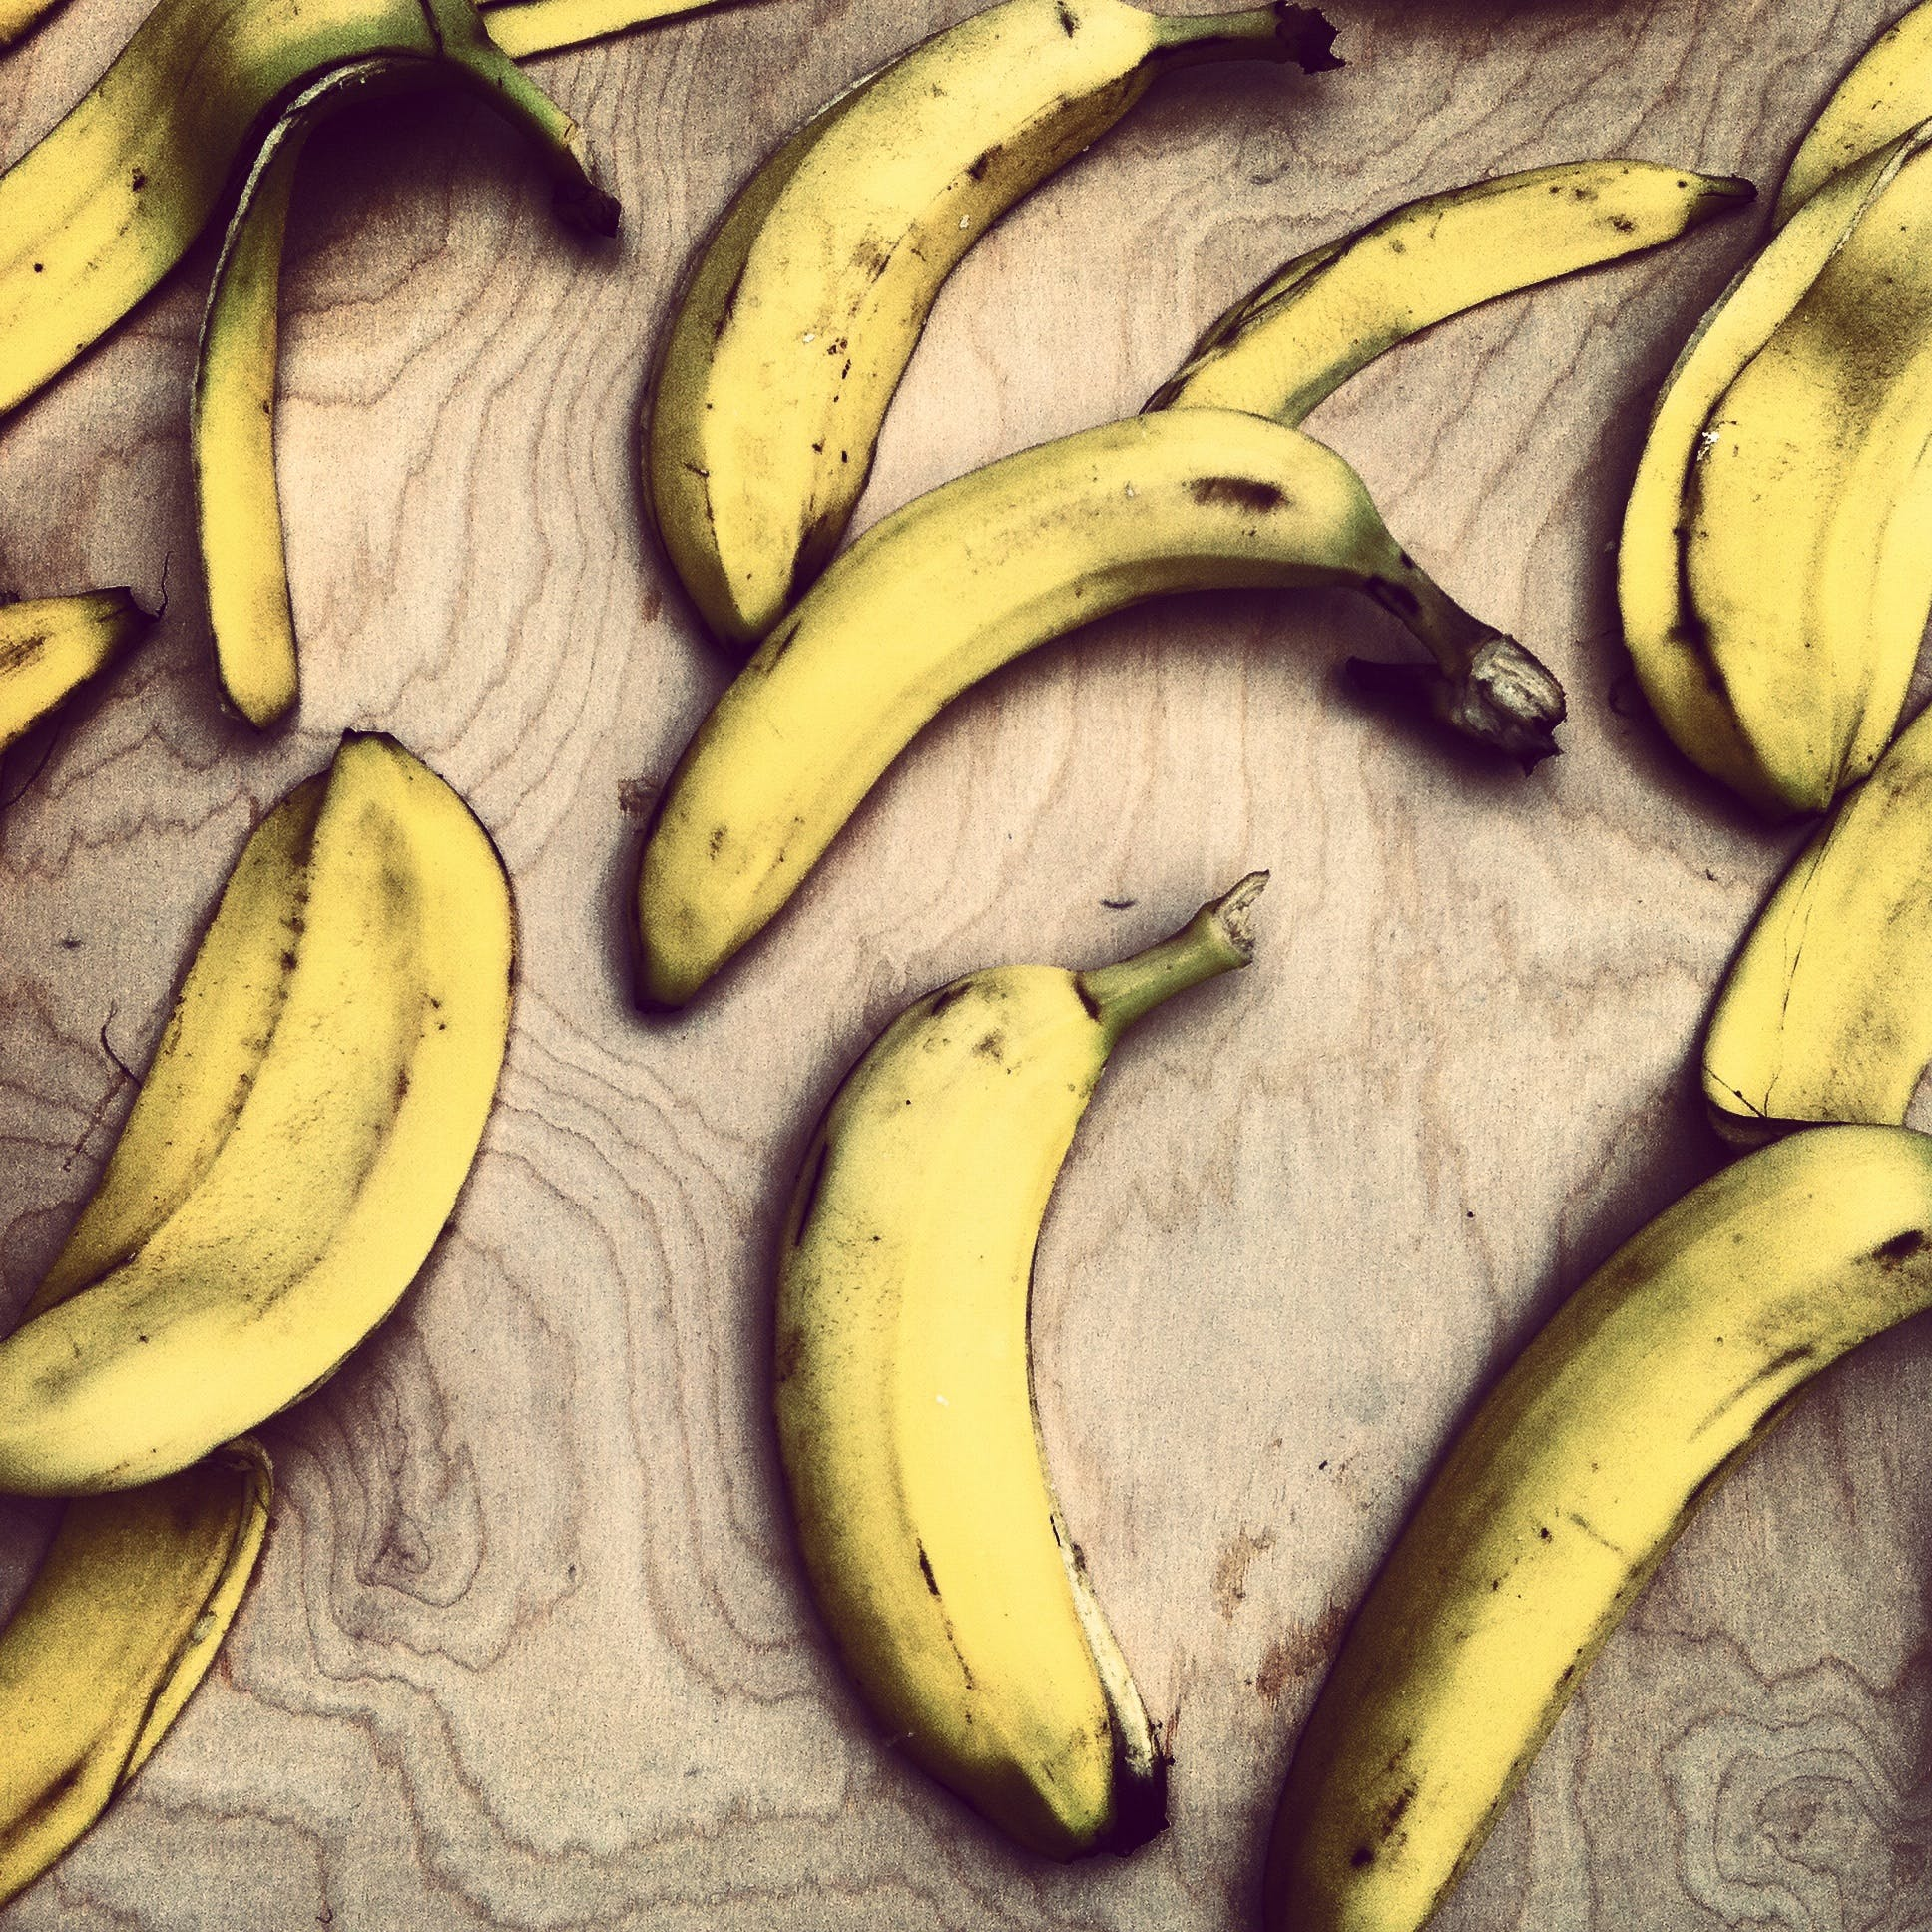 Yellow Bananas on Brown Wood